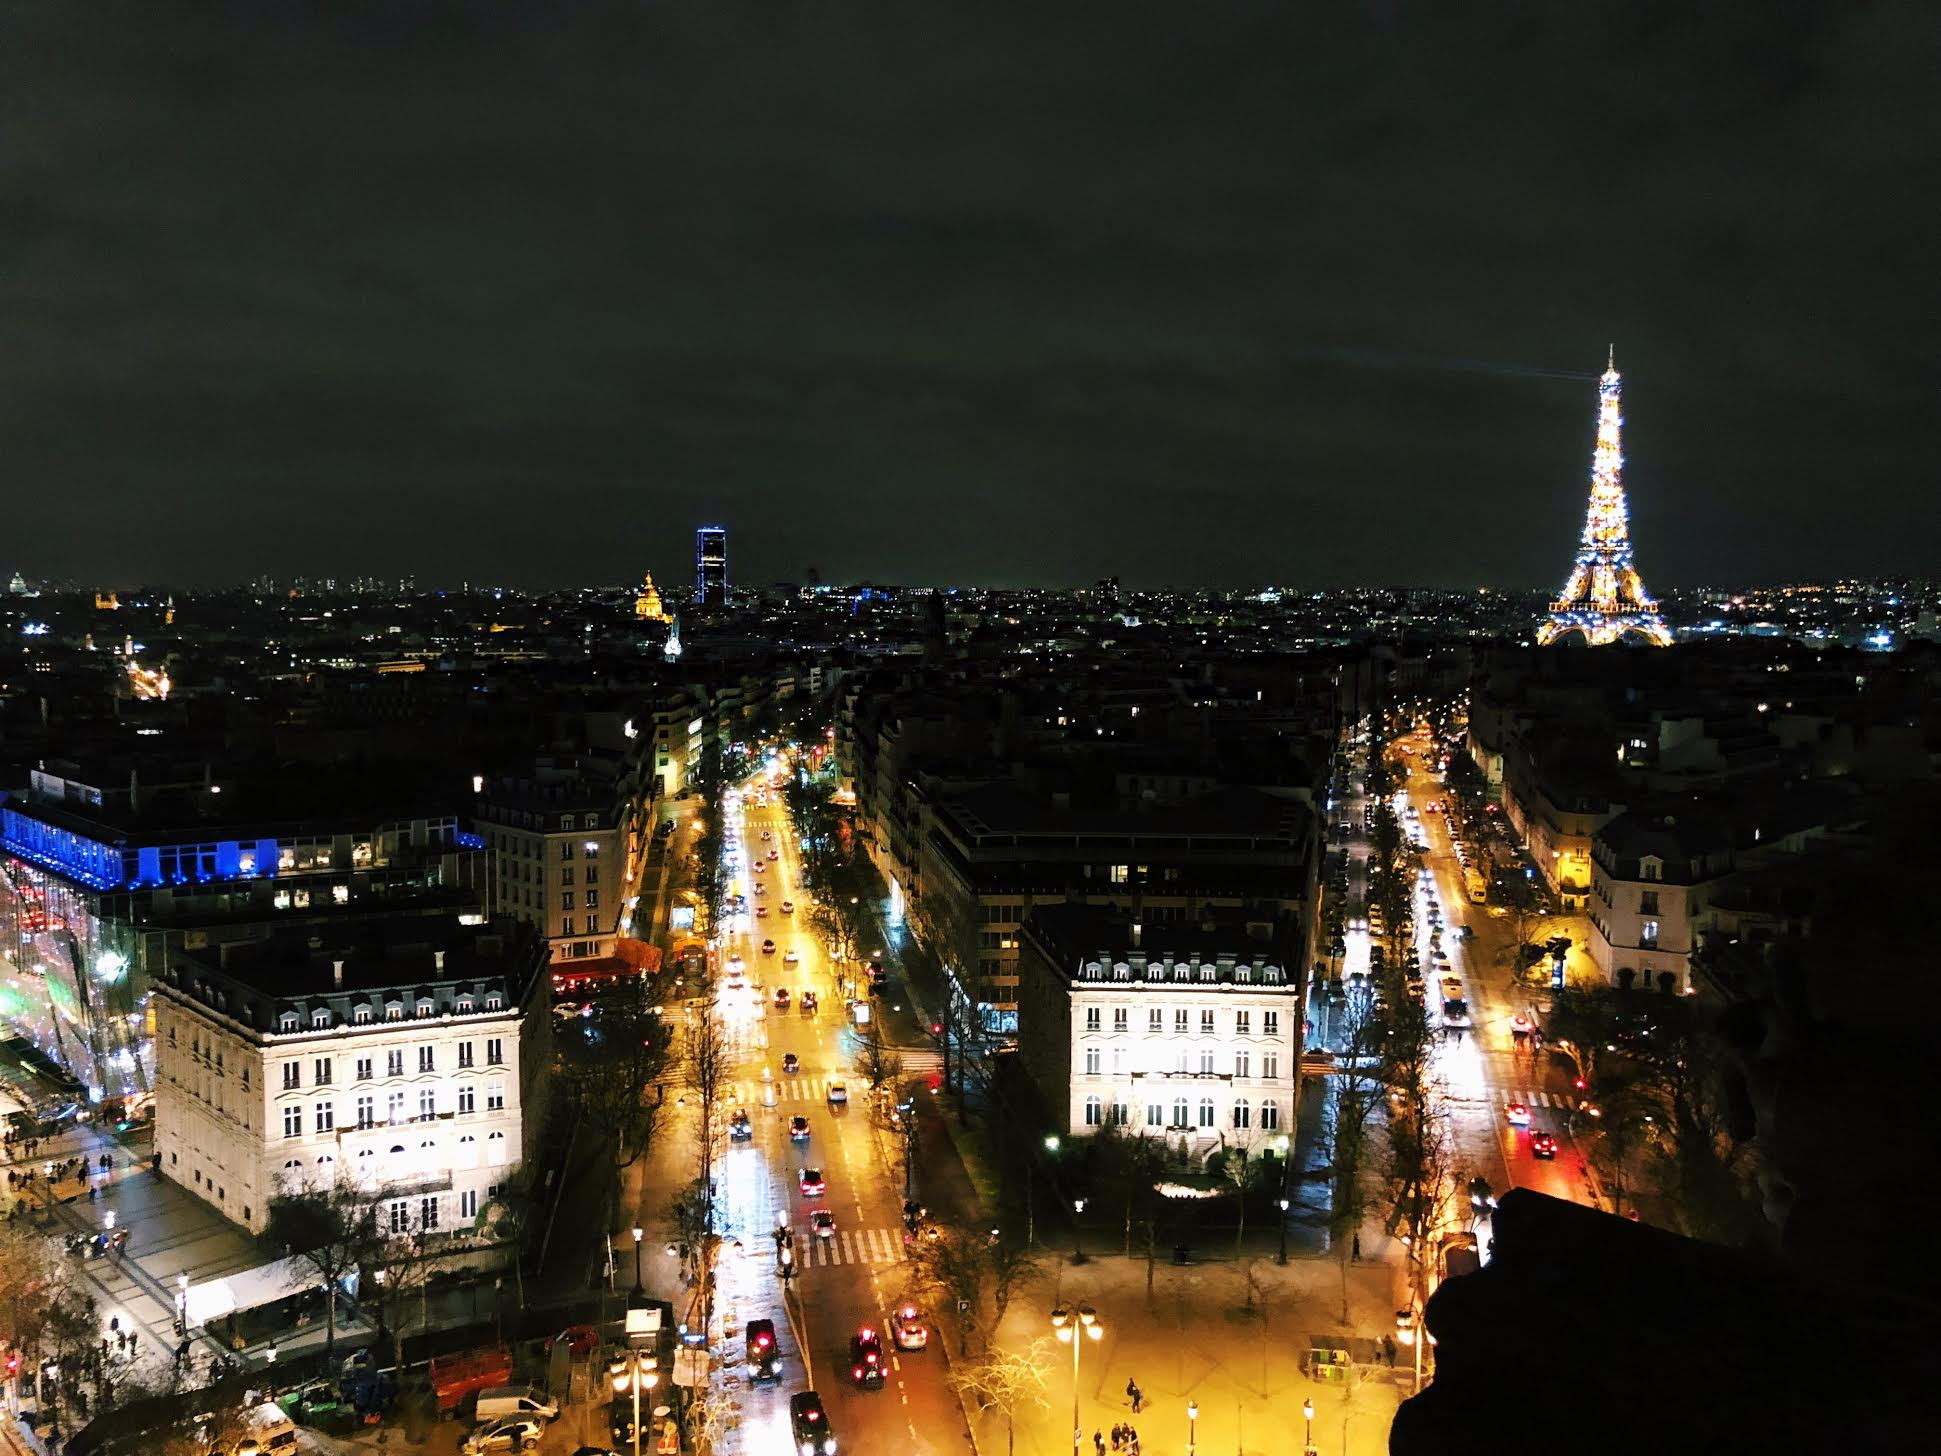 Muslim-travel-guide-Paris-Eiffel-Tower-light-show.jpg